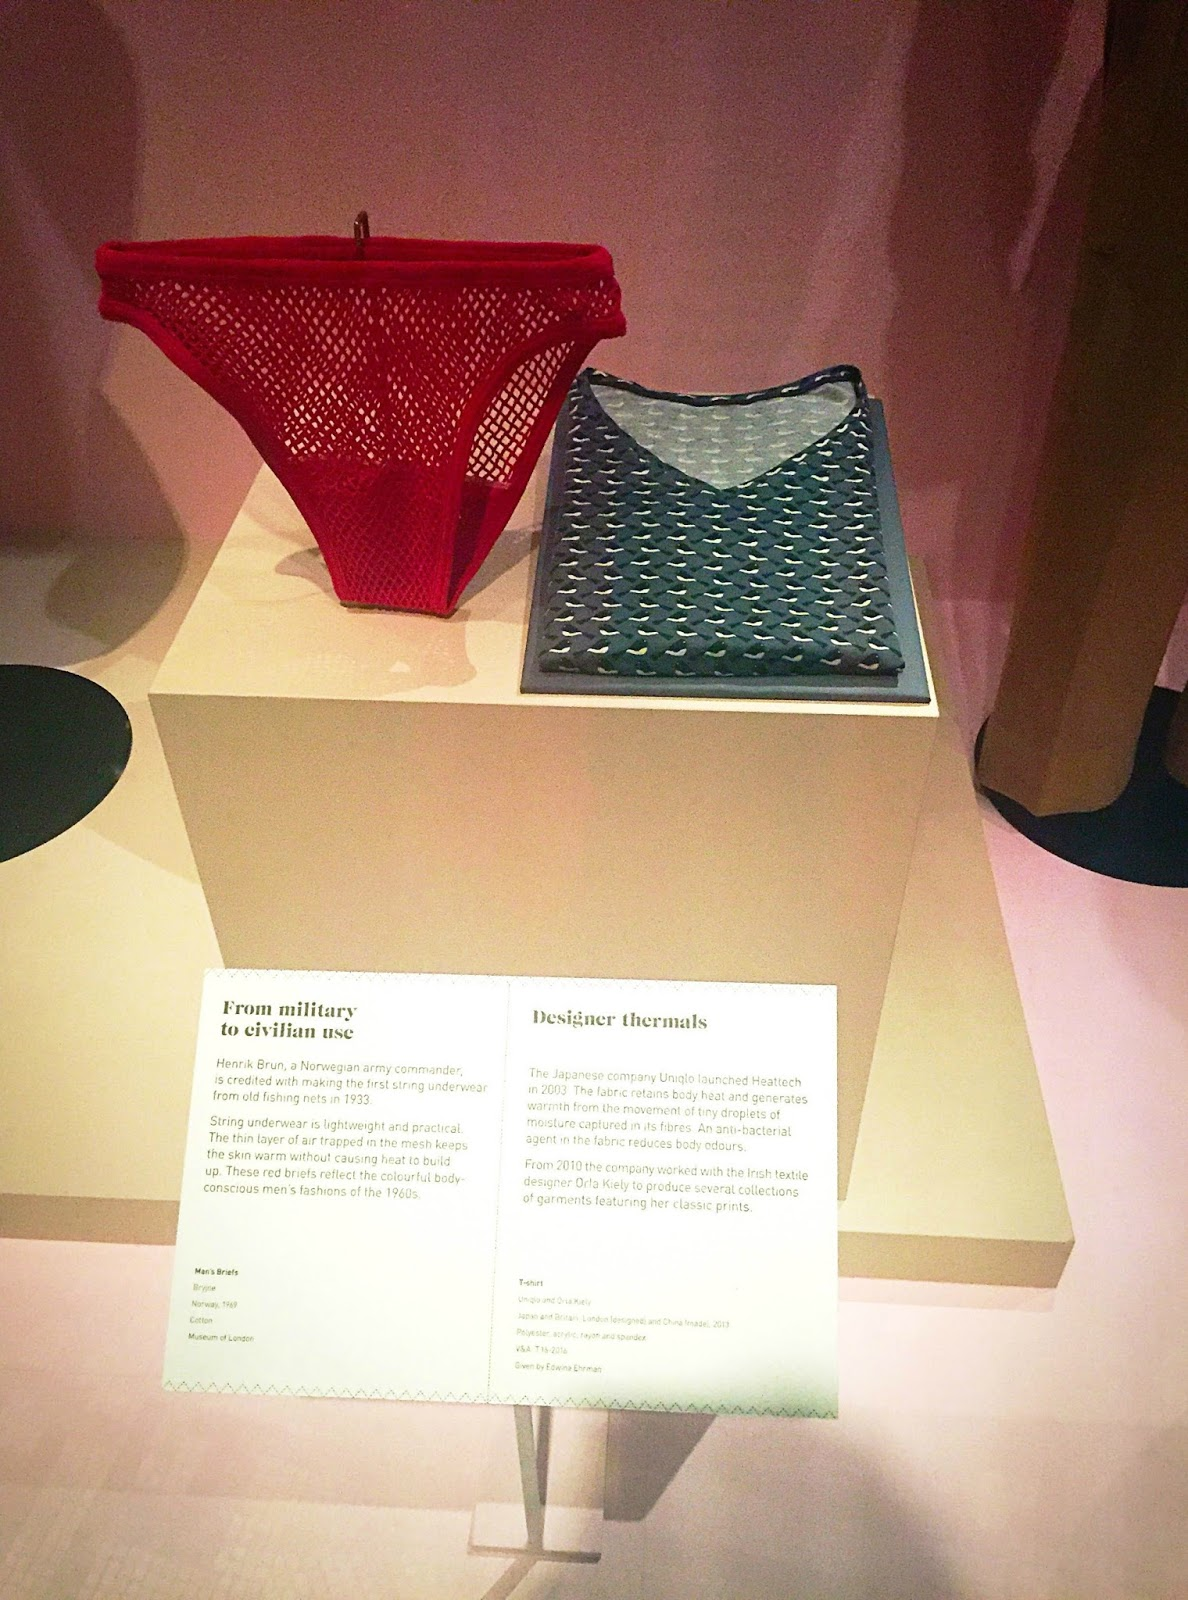 Uniqlo underwear displayed in a museum